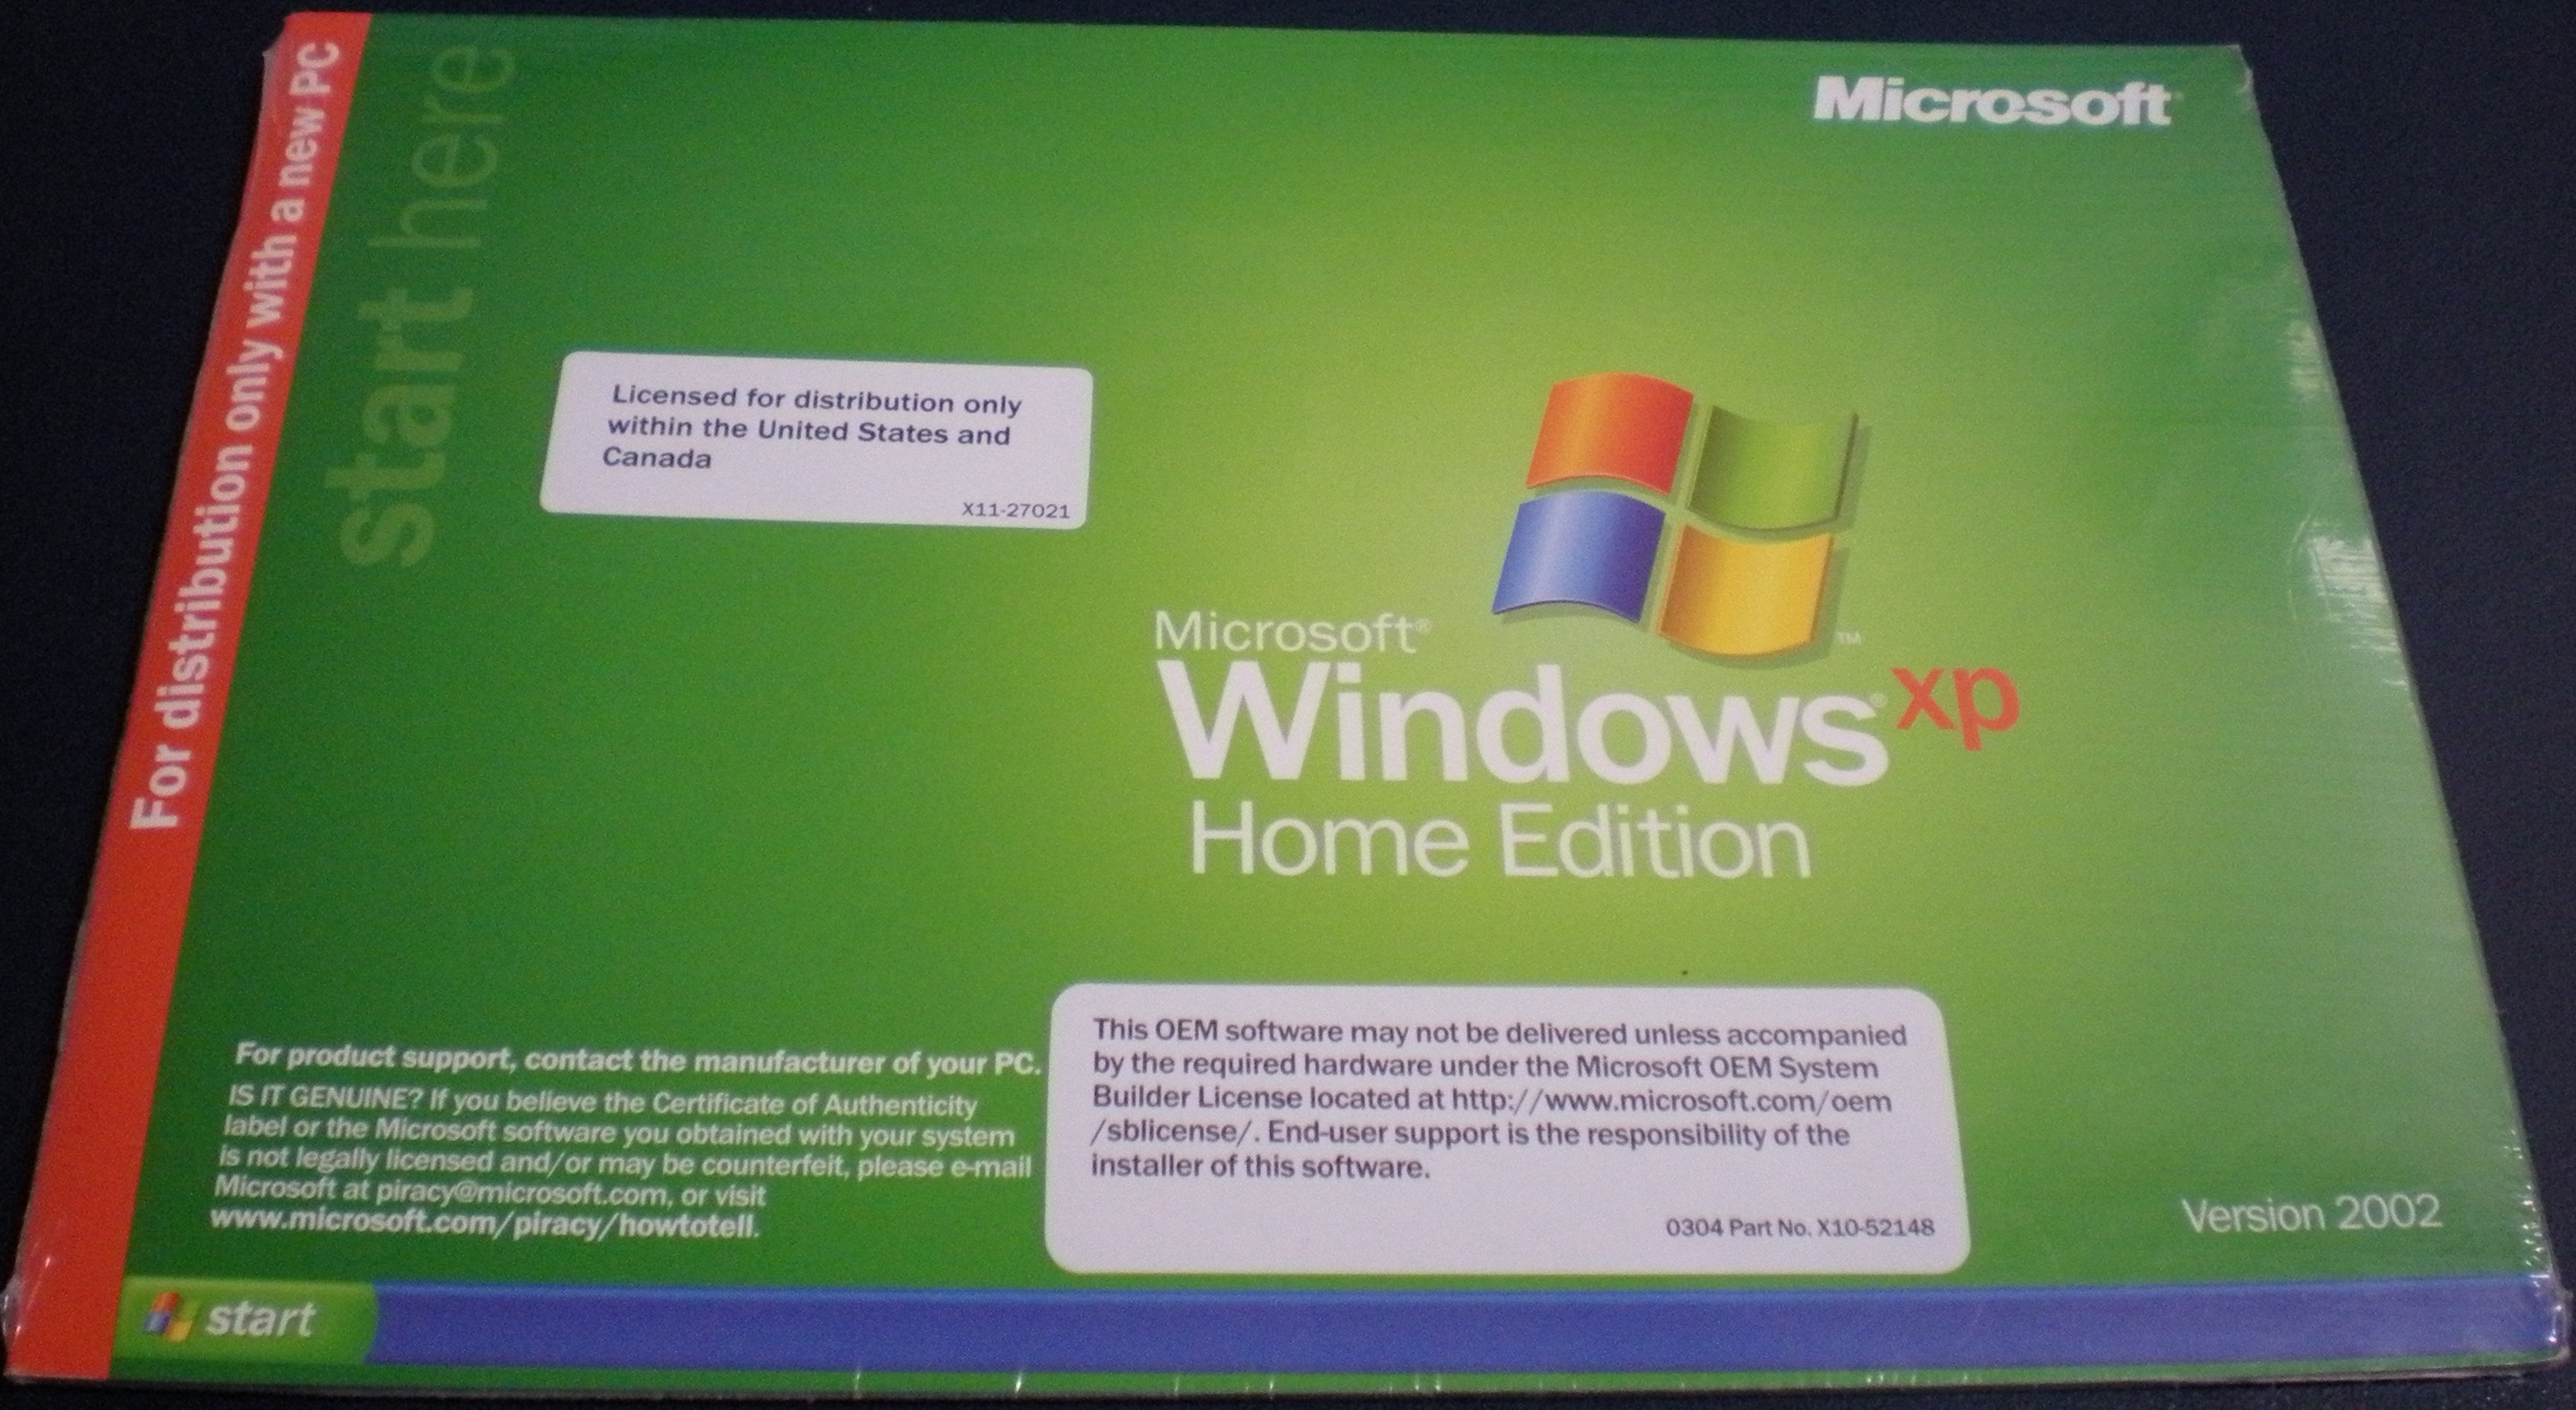 Windows Xp Home Edition Product Key Finder - chiegeh